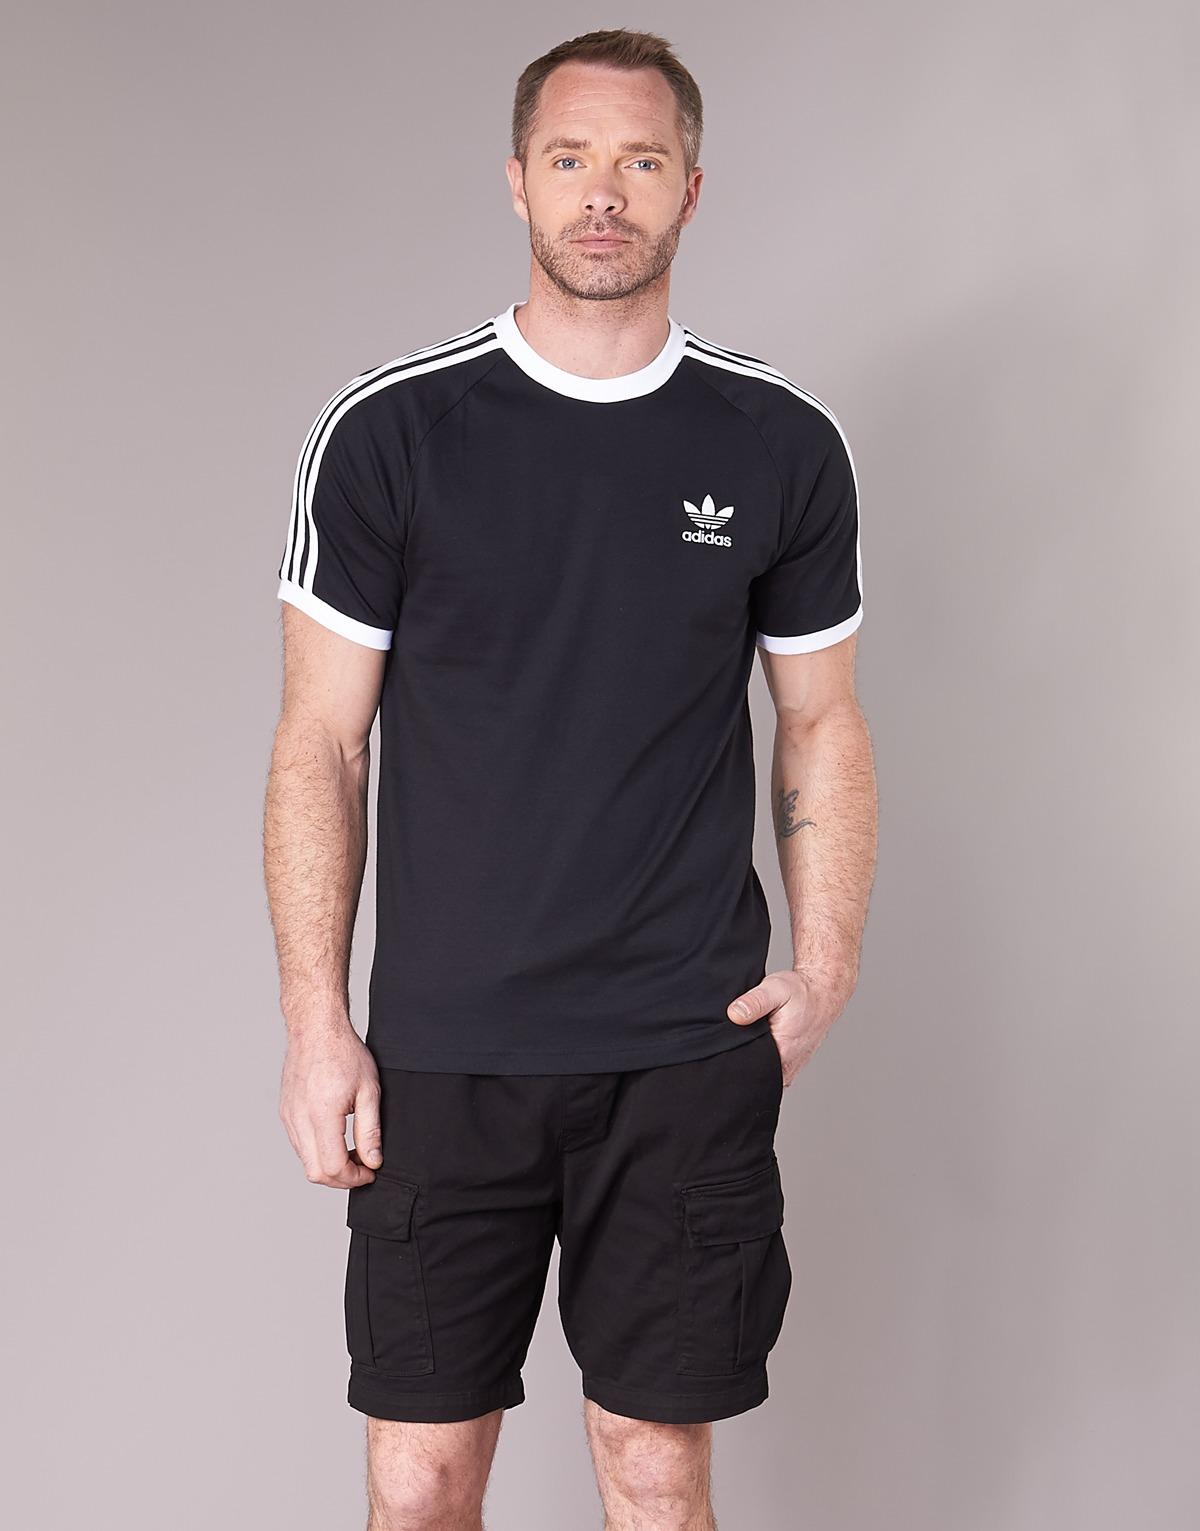 cheaper 6bac2 131ff adidas 3 Stripes Tee T Shirt in Black for Men - Save 63% - Lyst